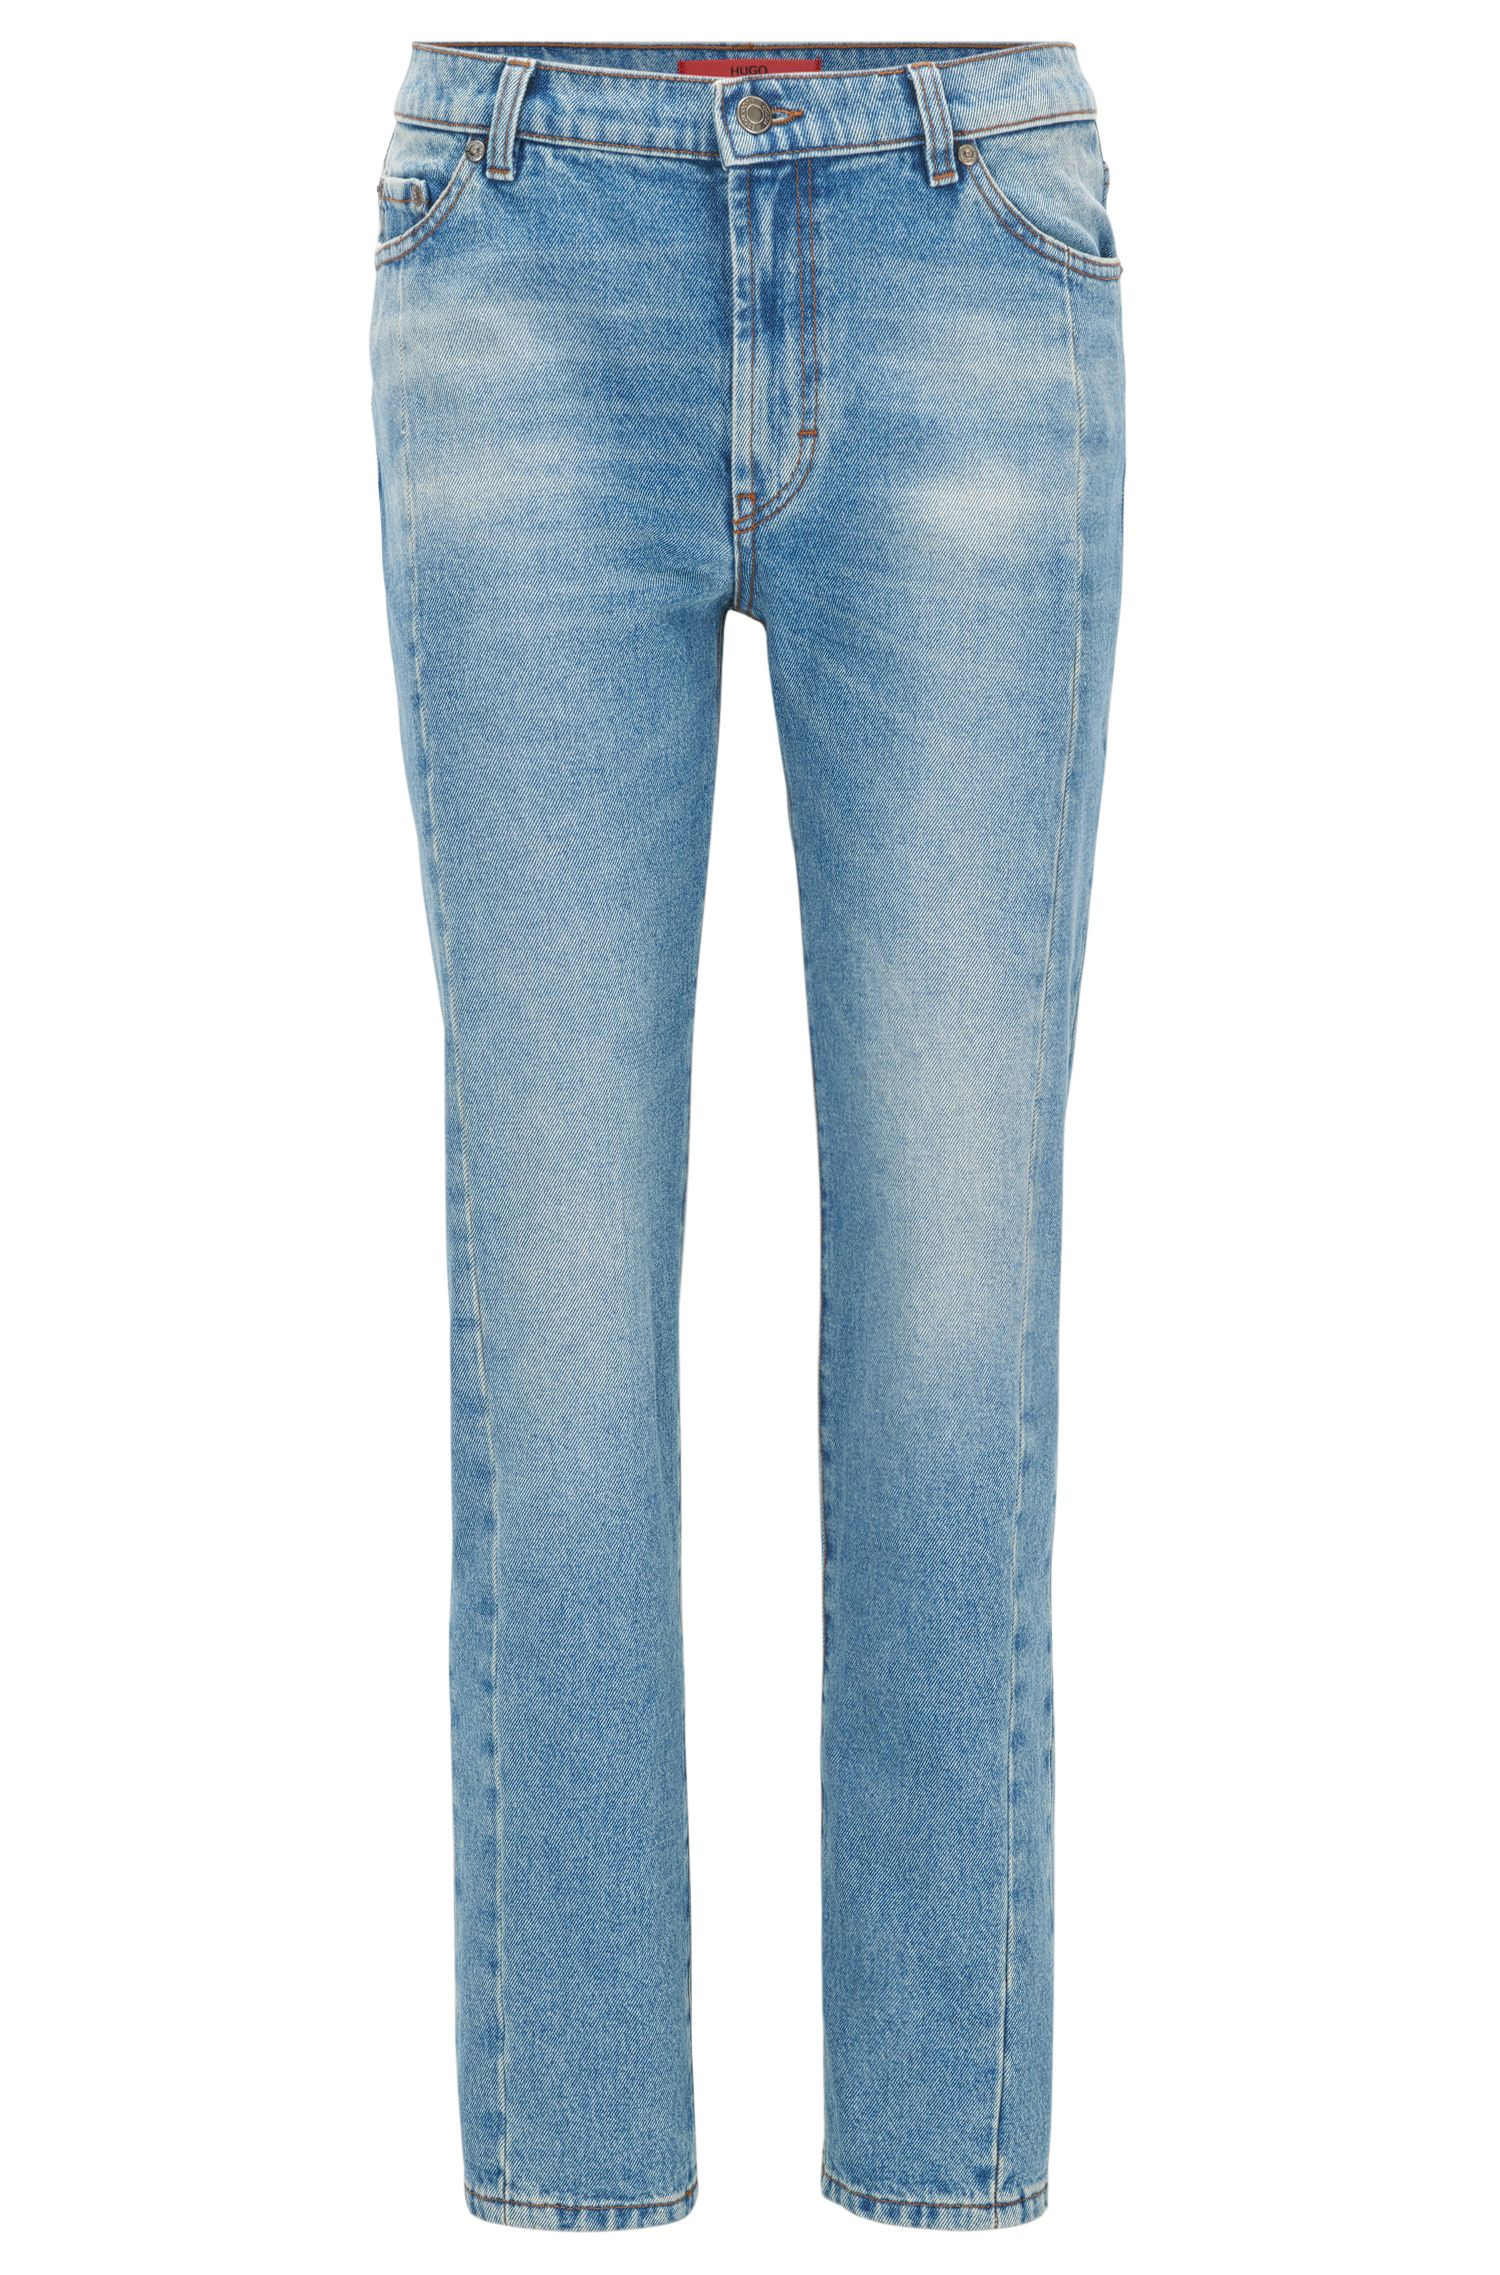 Skinny-fit jeans van denim in peper-en-zoutlook